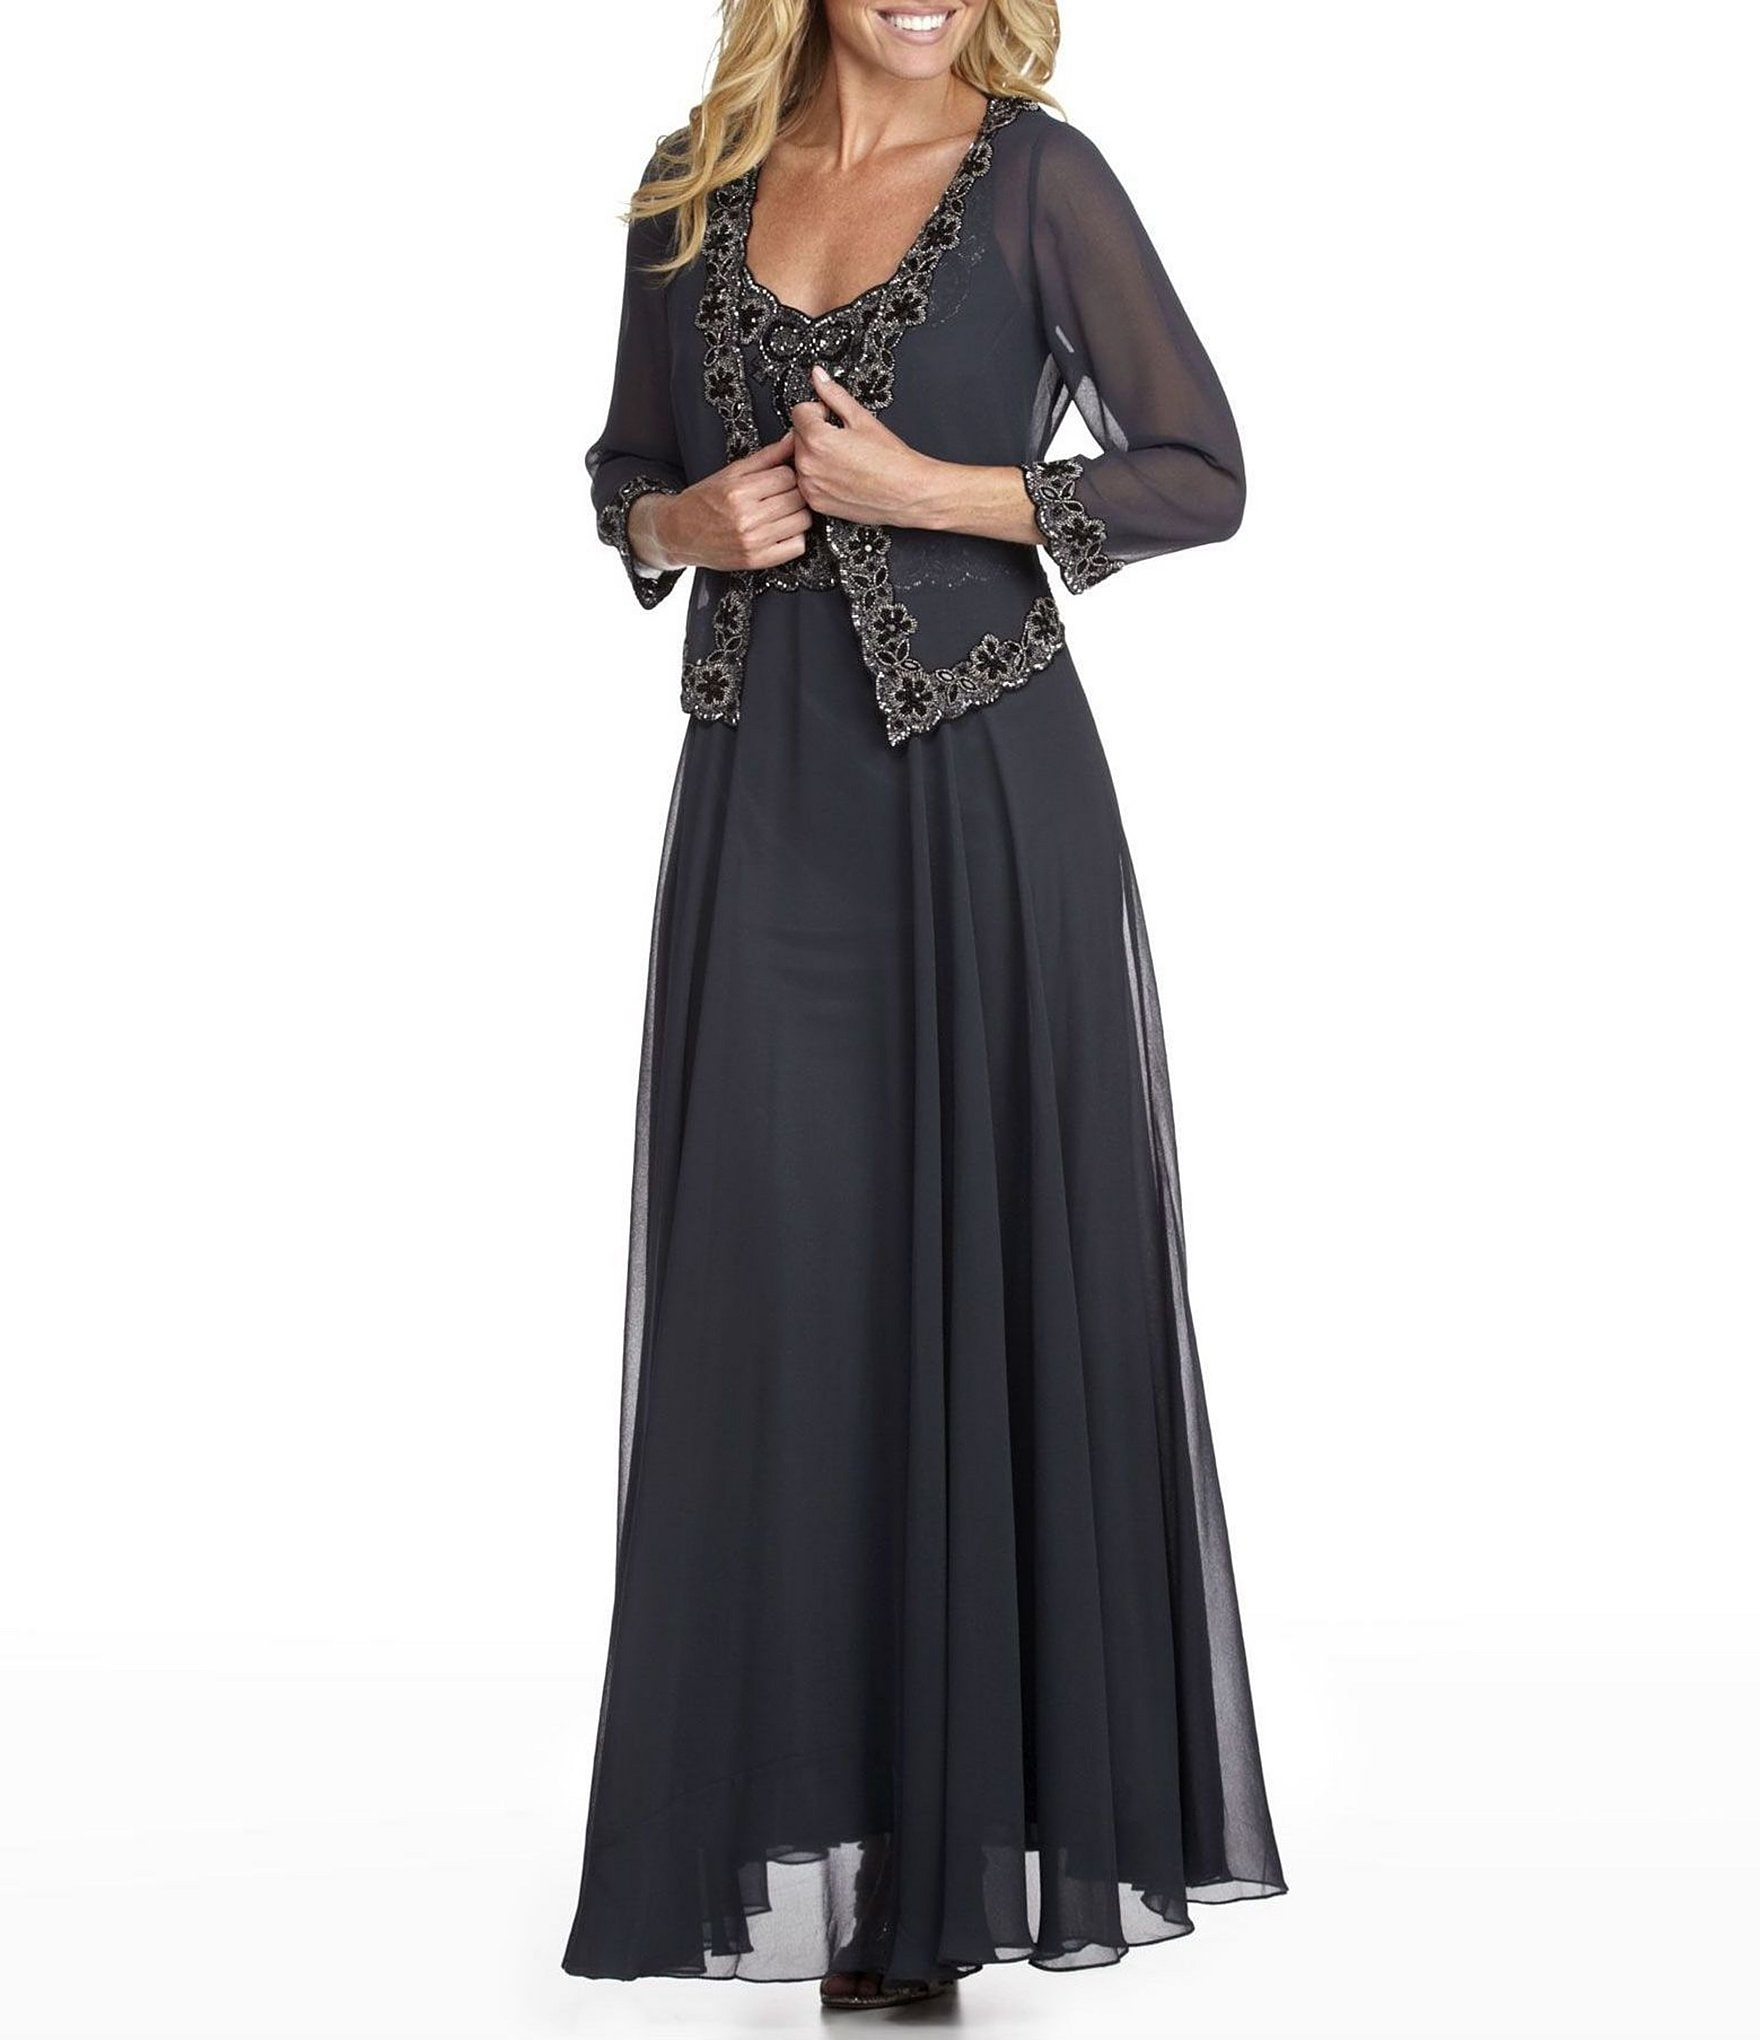 Women\'s Clothing | Petite | Dresses | Special Occasion | Gowns ...